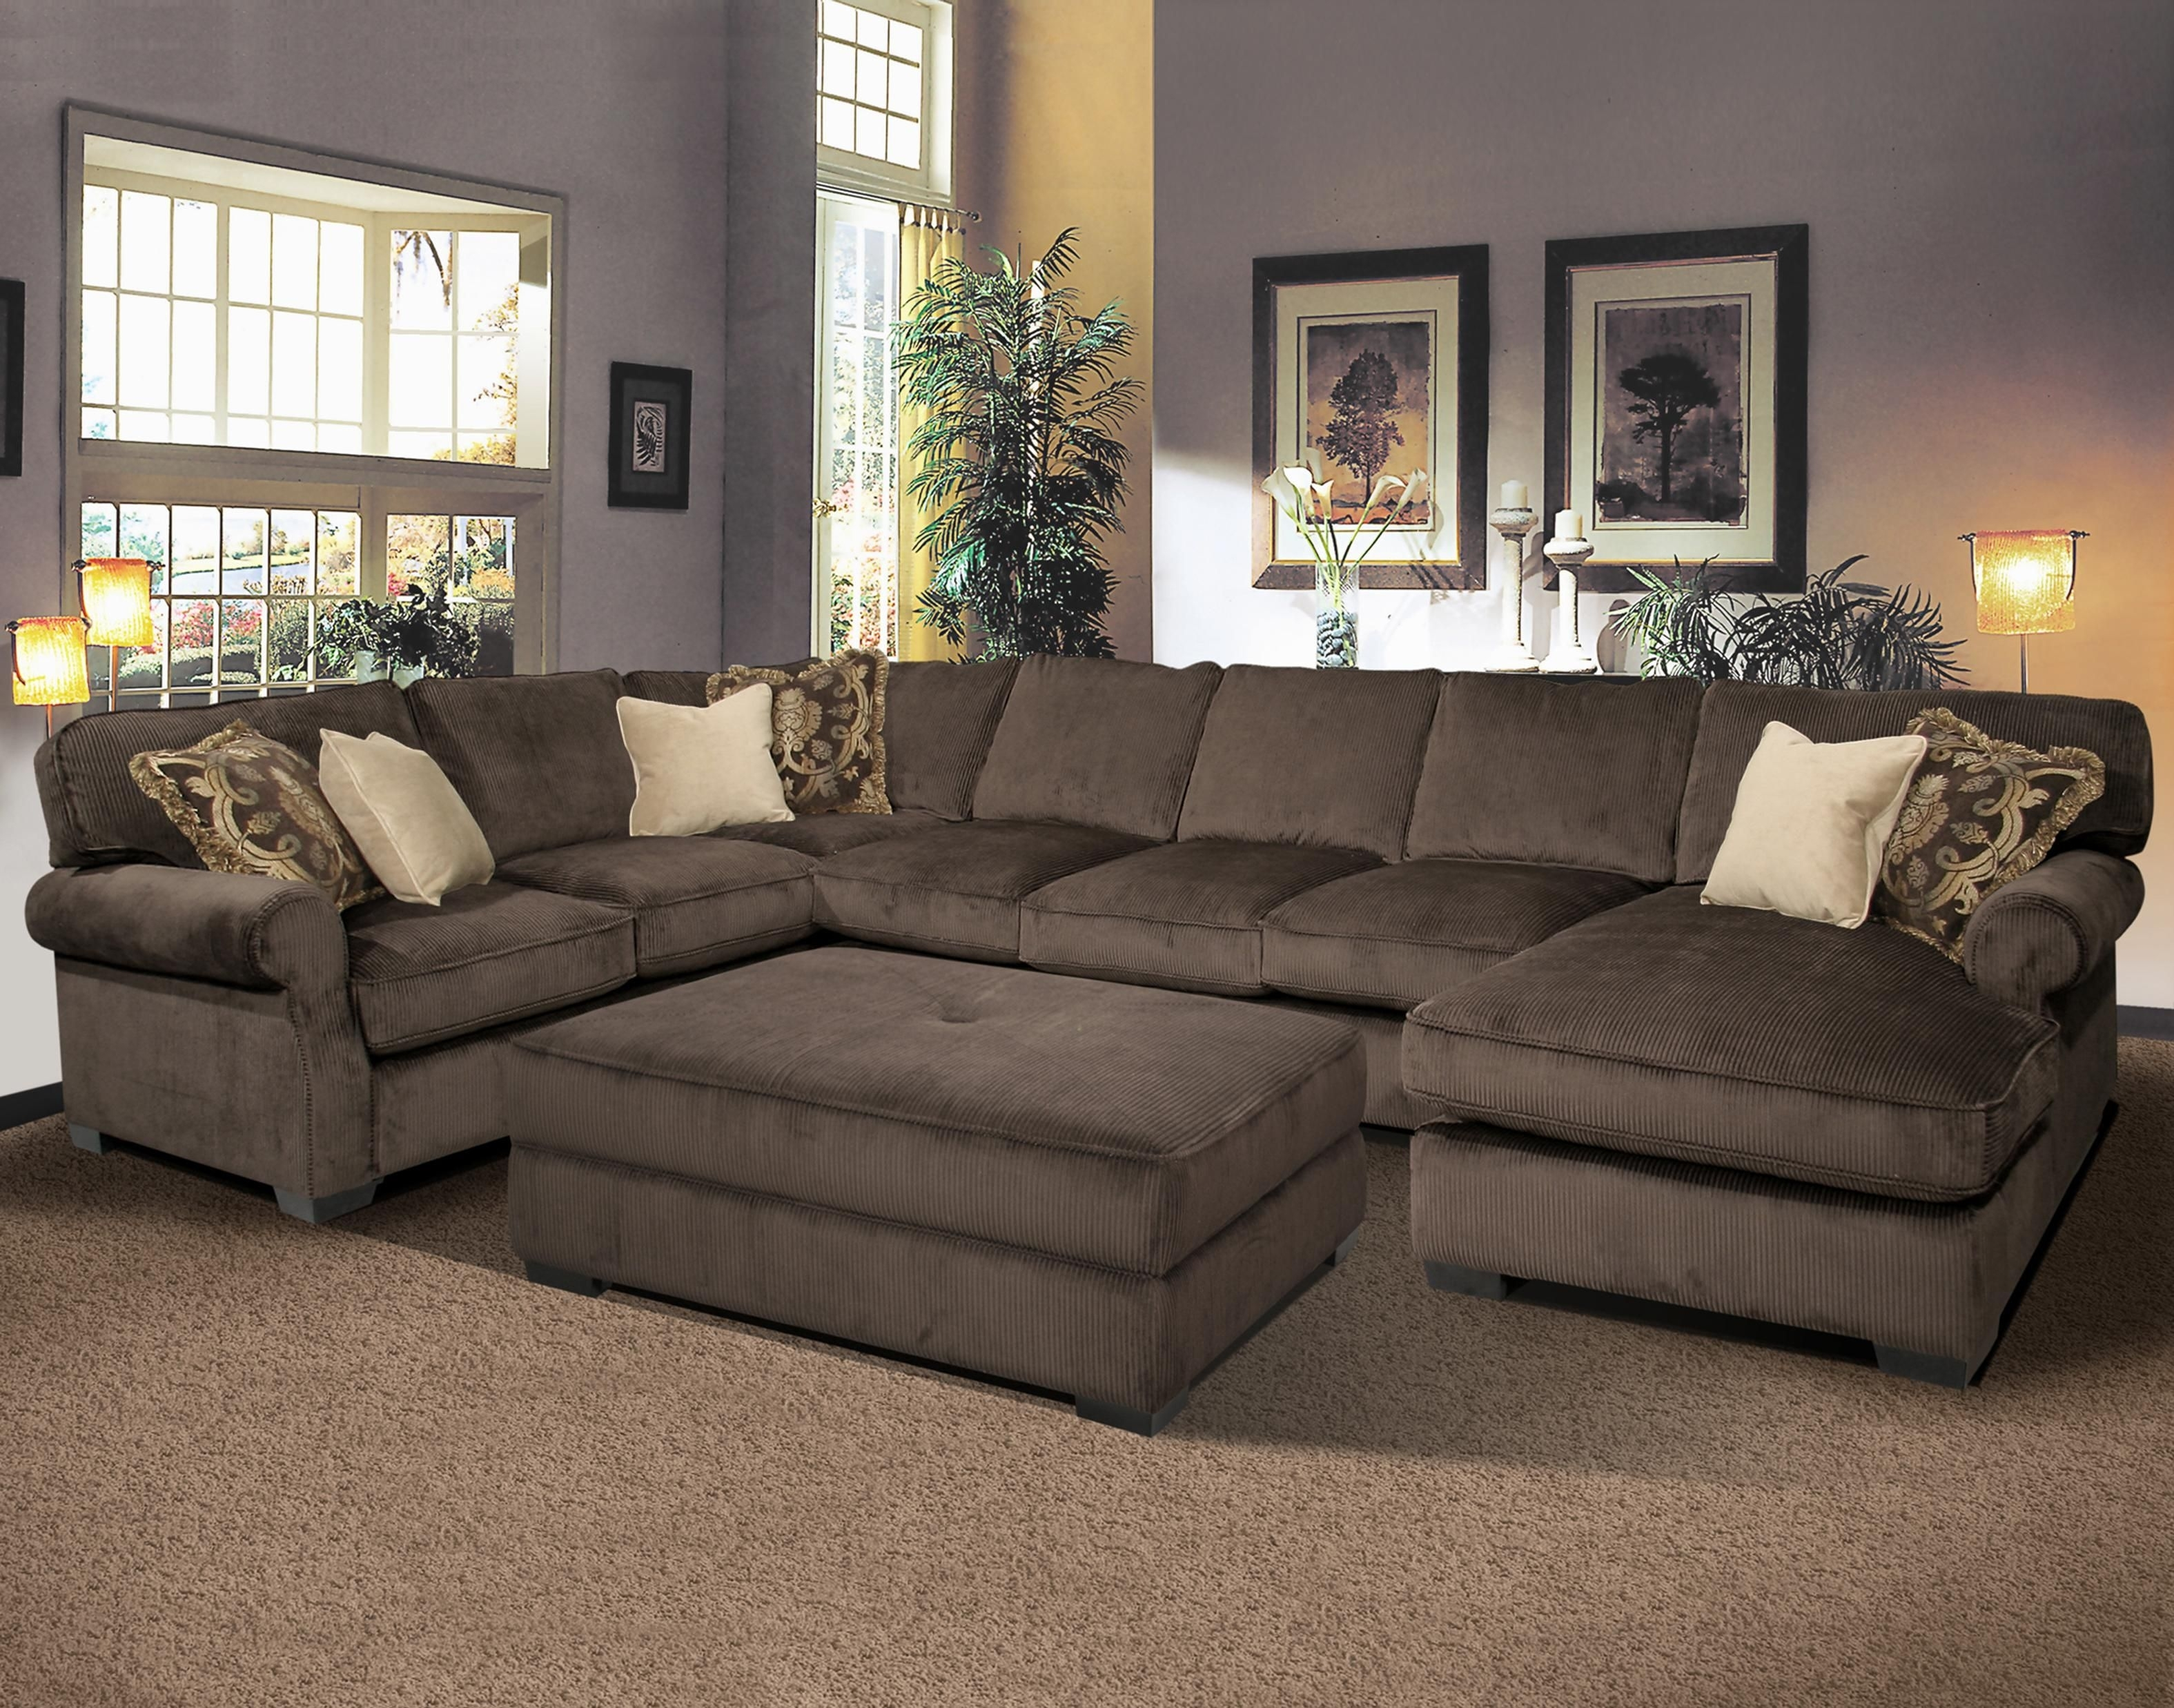 Popular Photo of Comfy Sectional Sofas